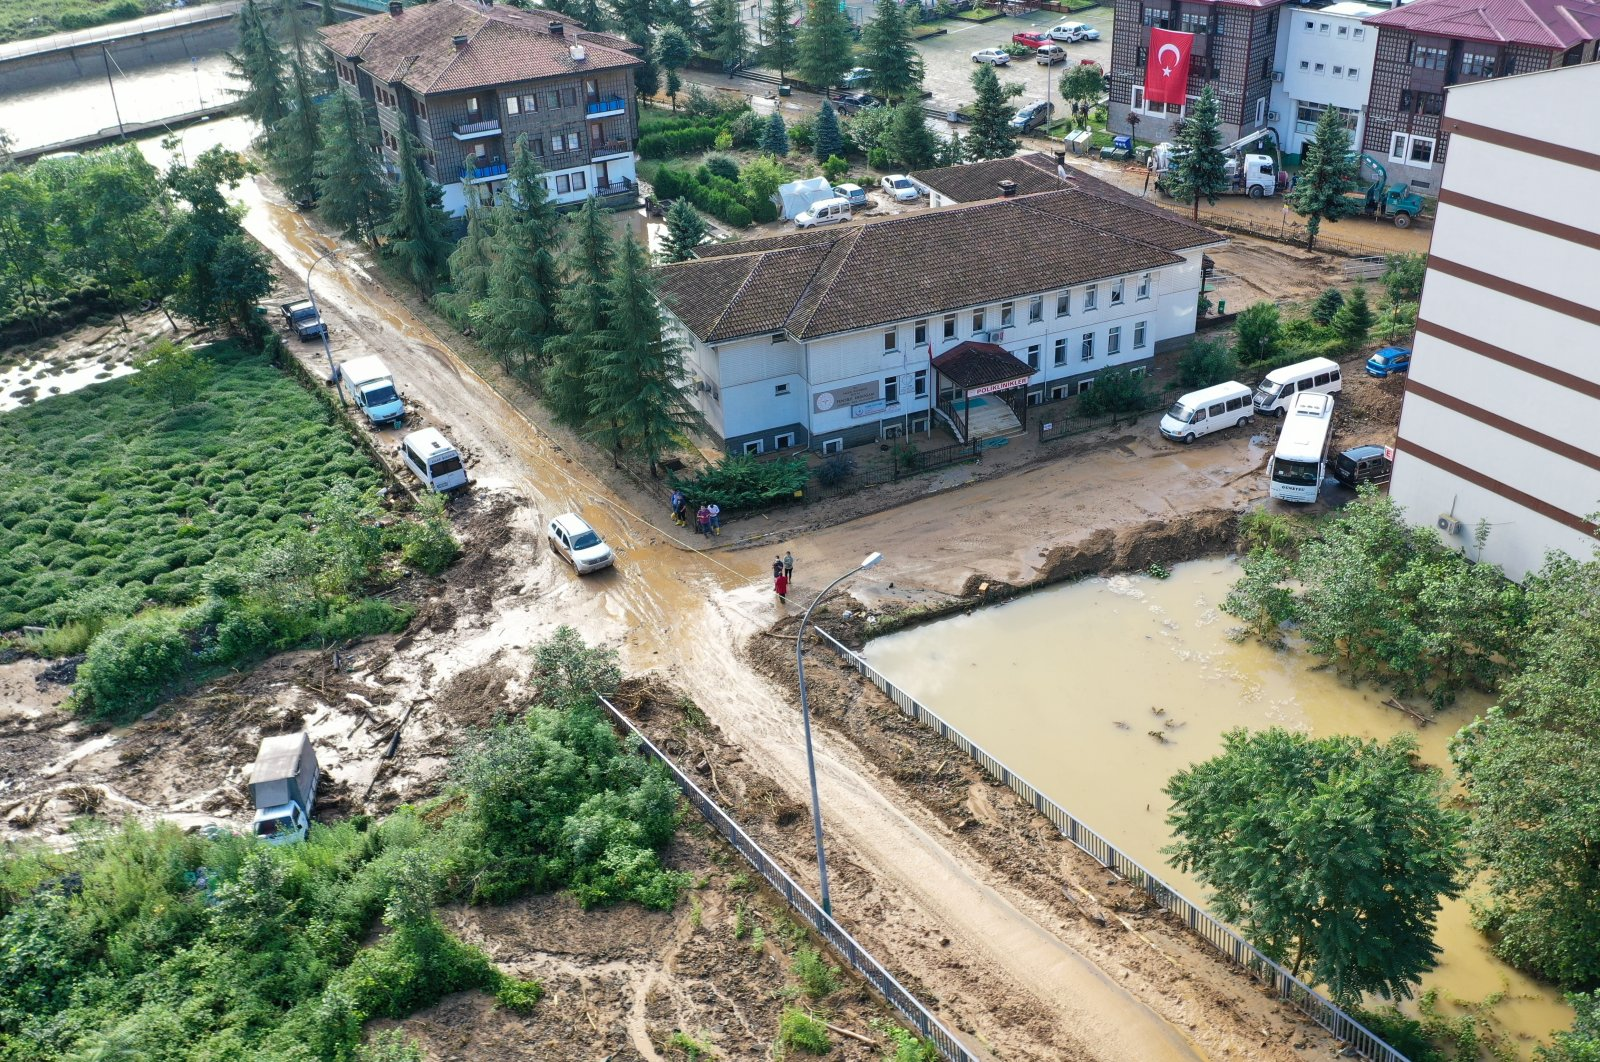 A view of Güneysu district with roads filled with debris and floodwaters, in Rize, northern Turkey, July 15, 2021. (AA Photo)